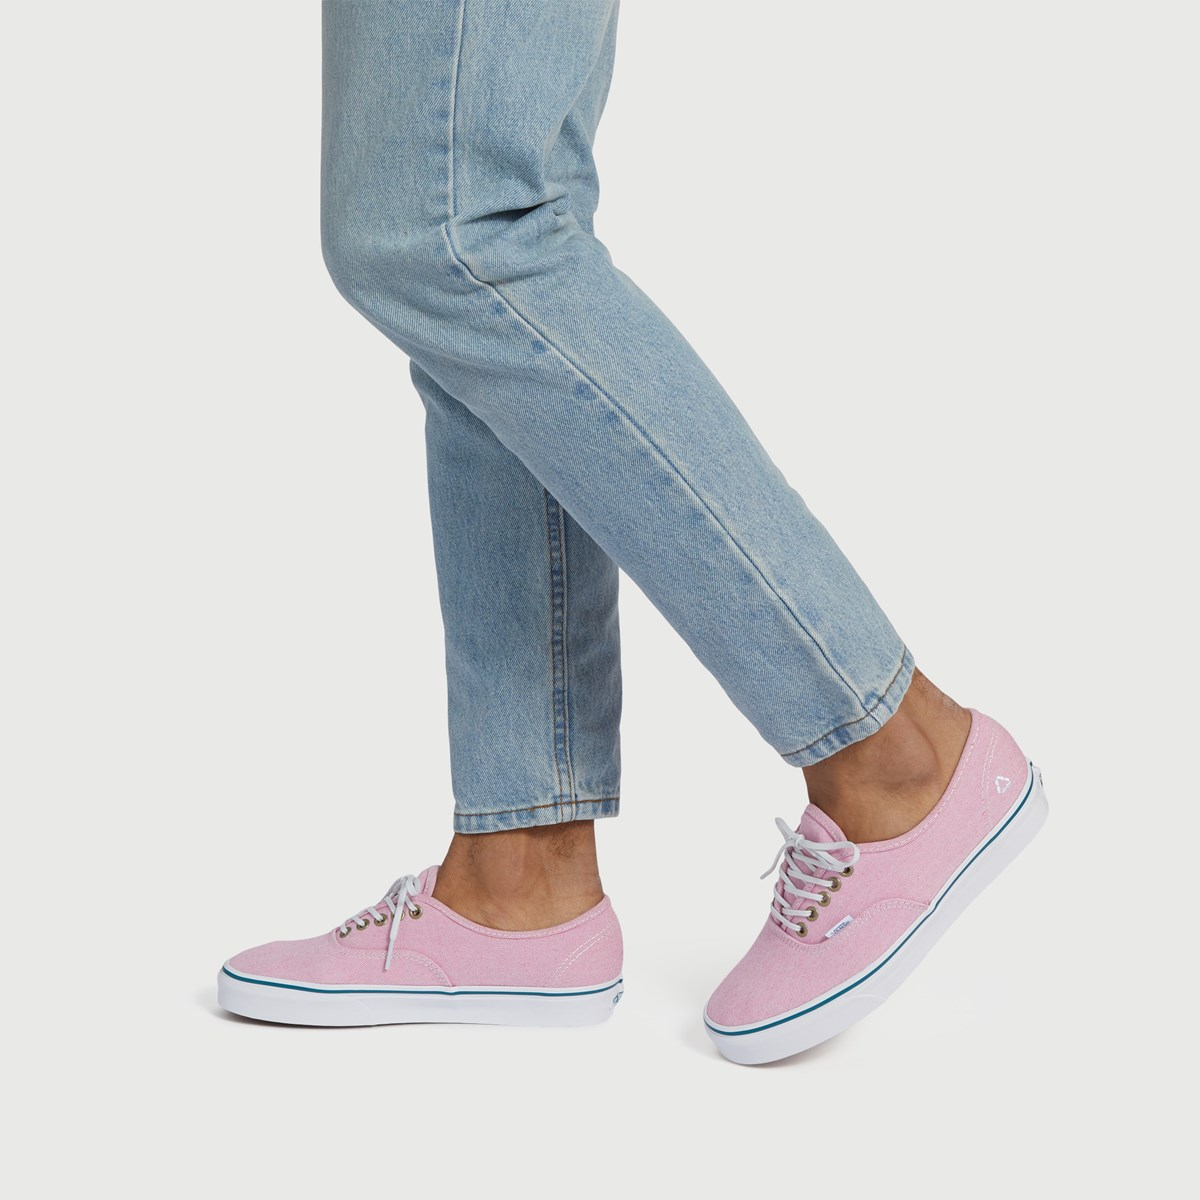 Men's Authentic P.E.T Sneaker in Rose